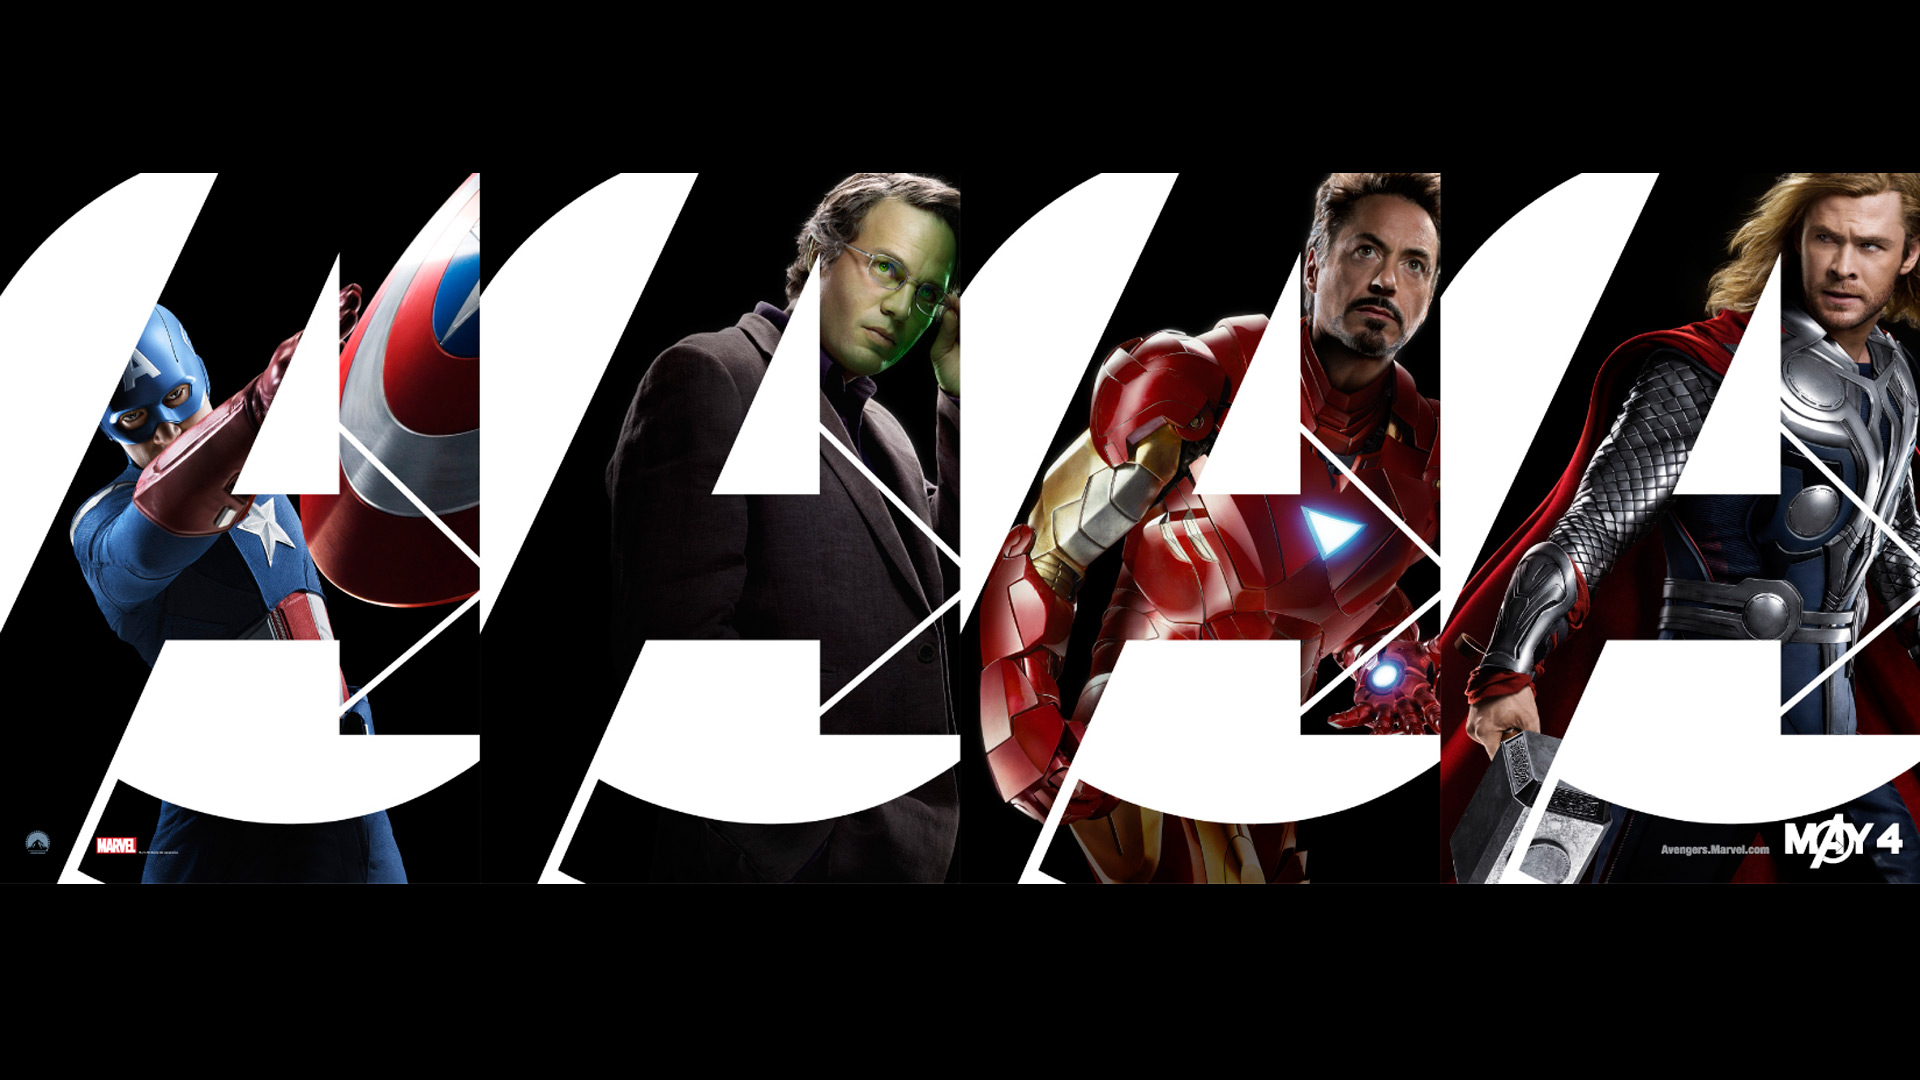 Avengers-Captain-America-Hulk-Iron-Man-Thor-wallpaper-wpc90017